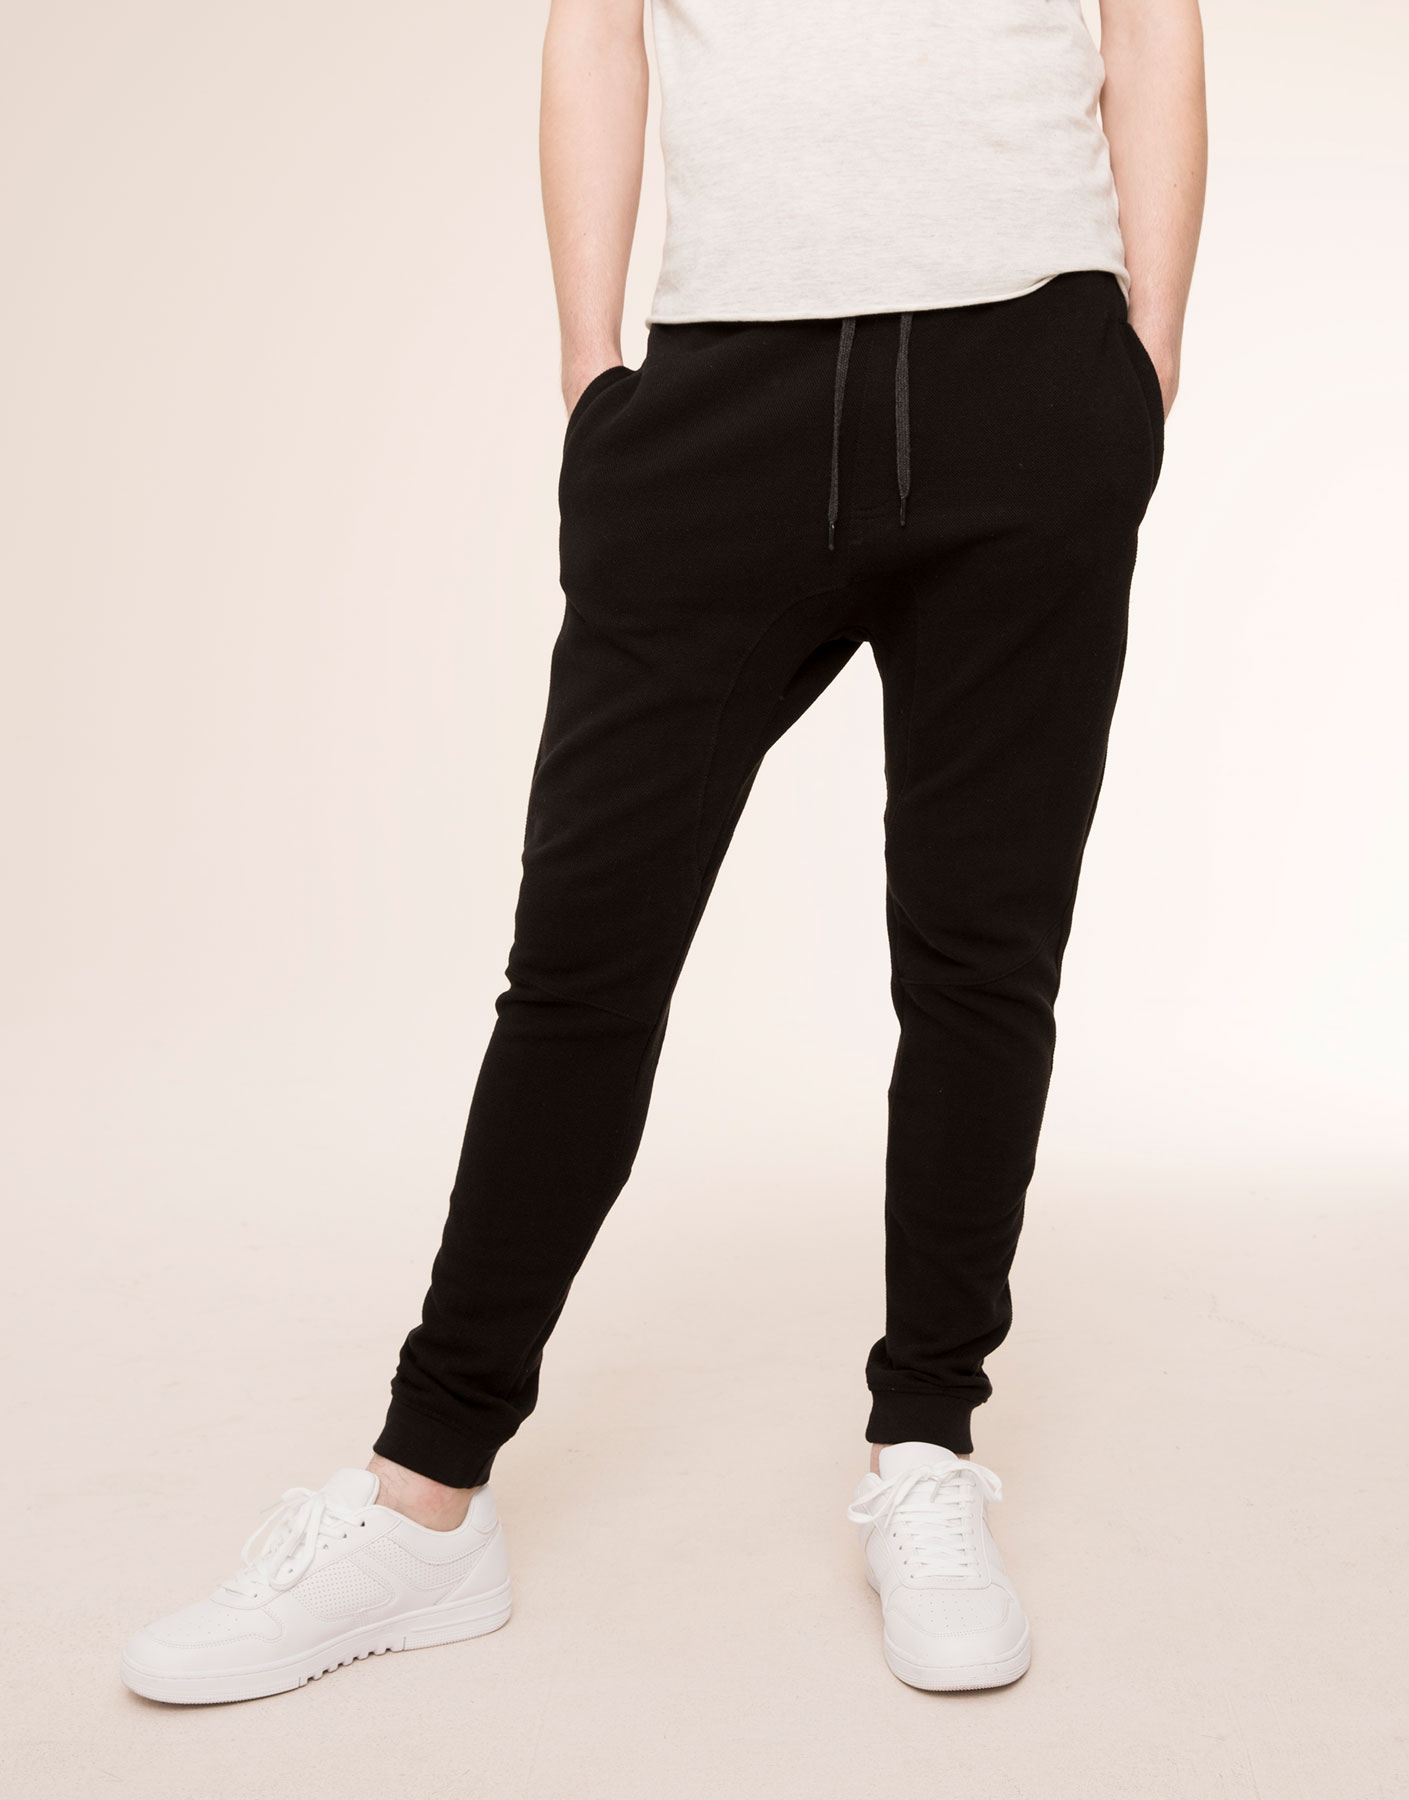 Jogging trousers with contrast waistband